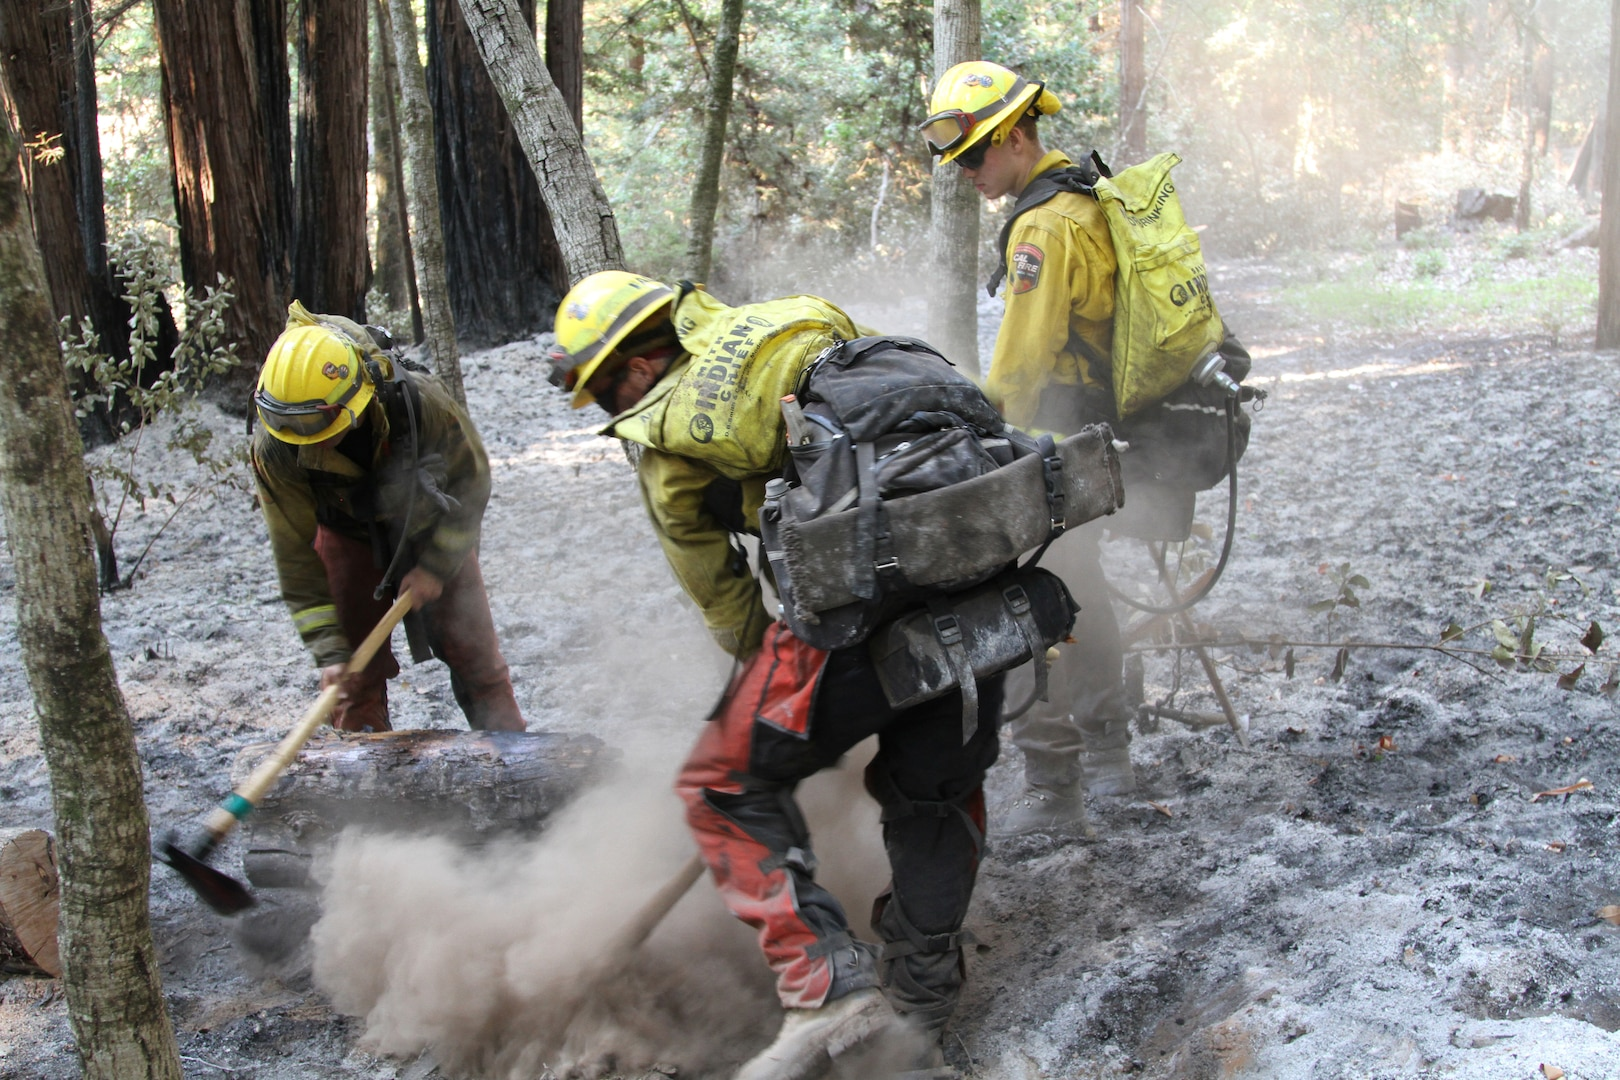 U.S. Army soldiers from the California Army National Guard's Task Force Rattlesnake out of Redding, California, put out a fire Sept. 1, 2020, near Scott's Valley, California, during the CZU Lightning Complex Fire in Santa Cruz and San Mateo counties. DLA Troop Support's Clothing and Textiles team provided more than 700 boots to the Army National Guard as of Sept. 17, 2020 in support of mobilized firefighters combating West Coast wildland fires.